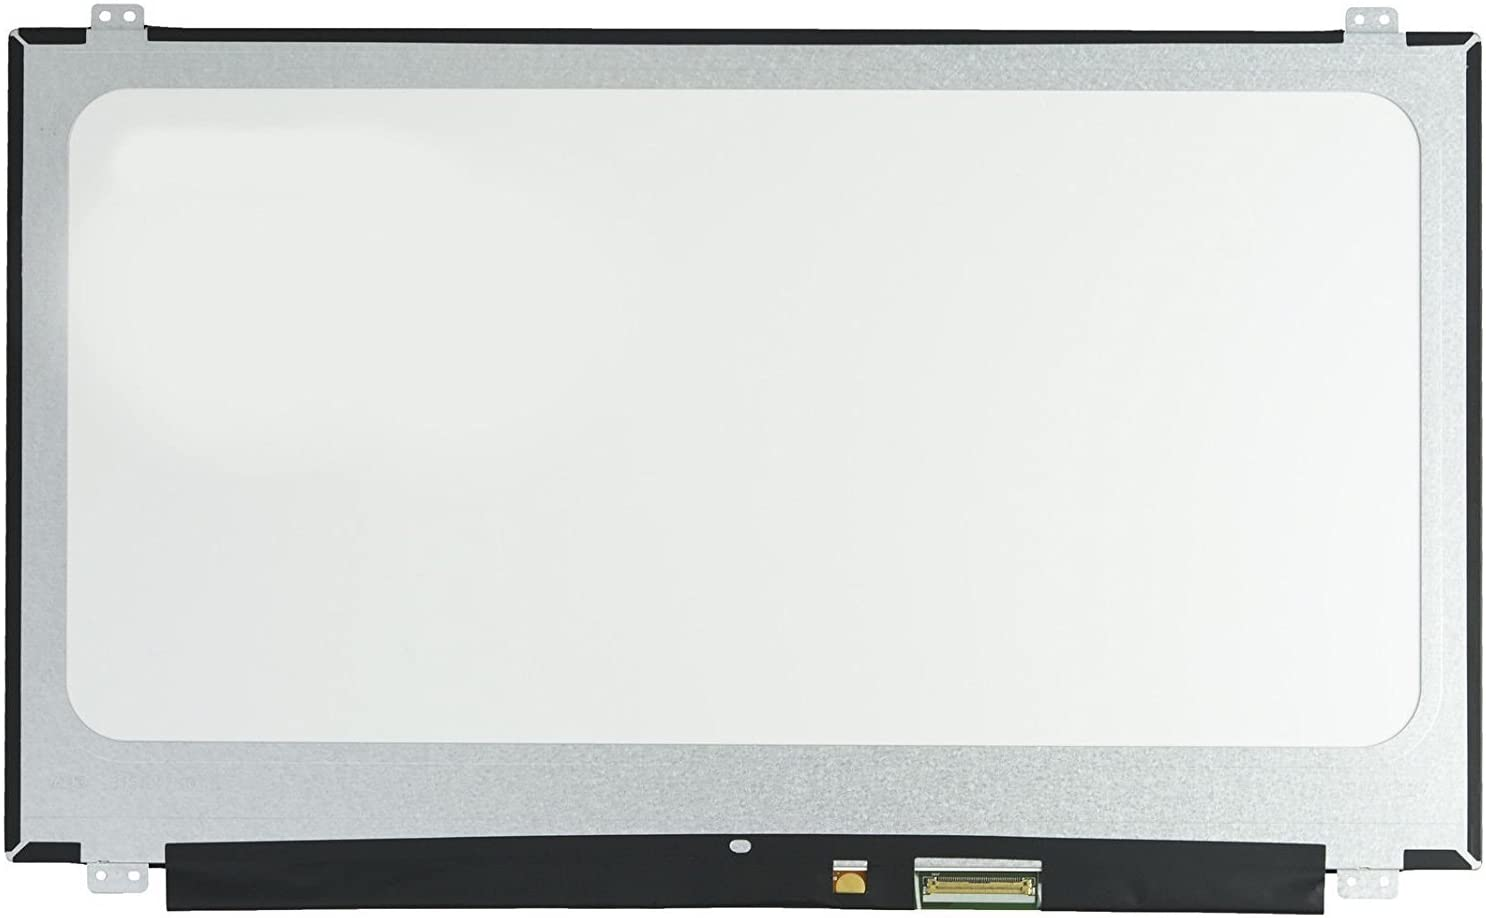 Lenovo Ideapad 320-15IKB 80XL Series 15.6 HD LED LCD Screen Non Touch